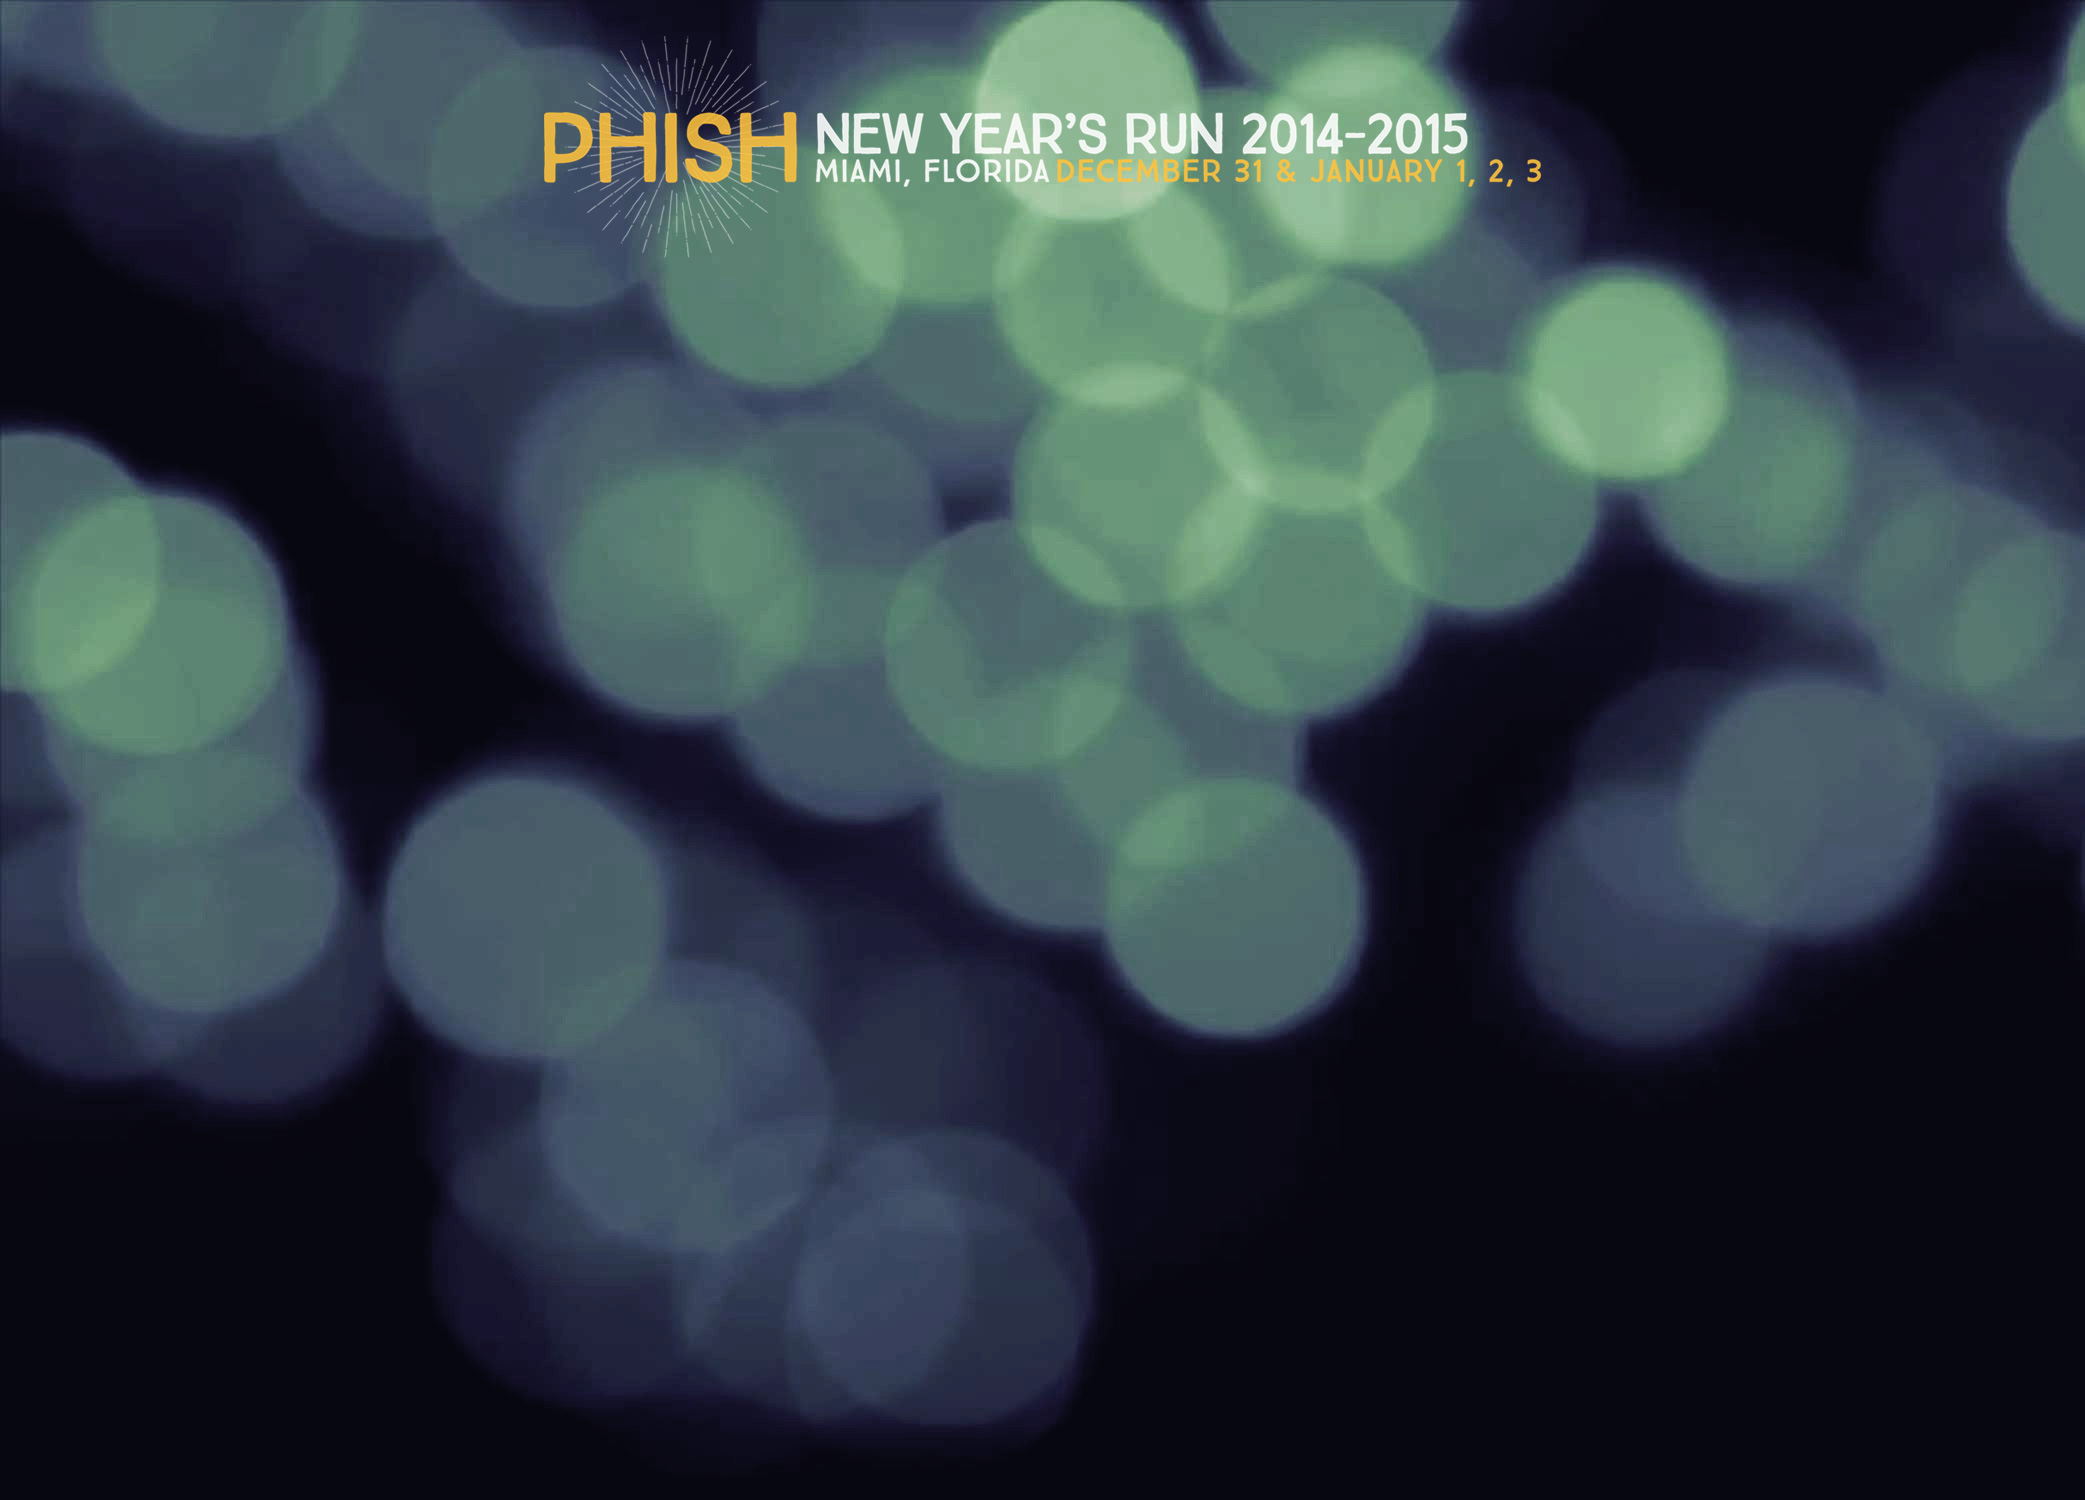 Phish New Year's Run 2014-2015